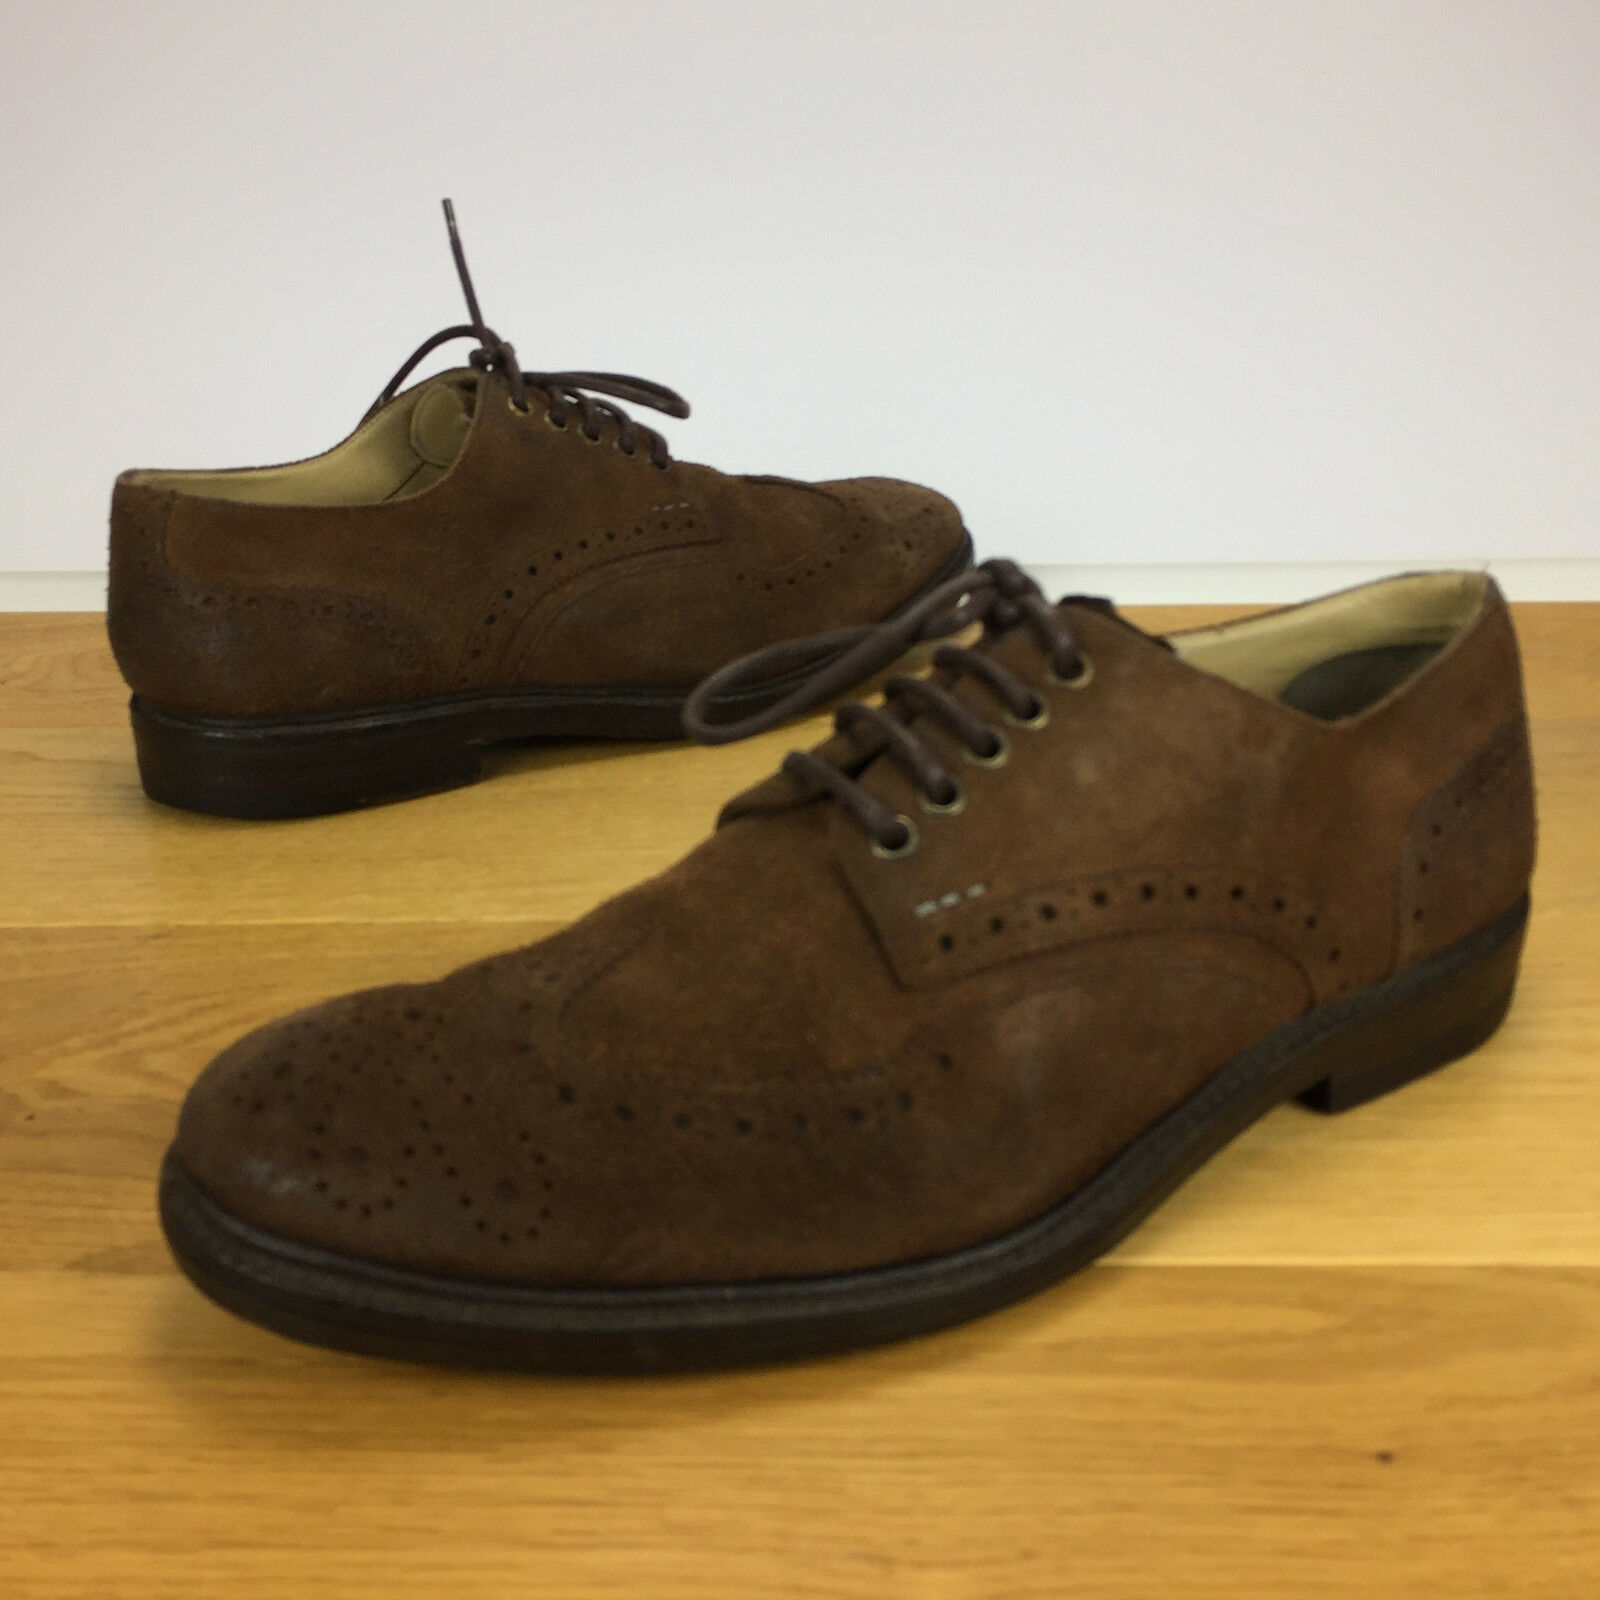 PAUL SMITH SCHUHE GR 43 / 9 (L9115-86-1278) BUDAPESTER BROGUE RAHMENGENÄHT